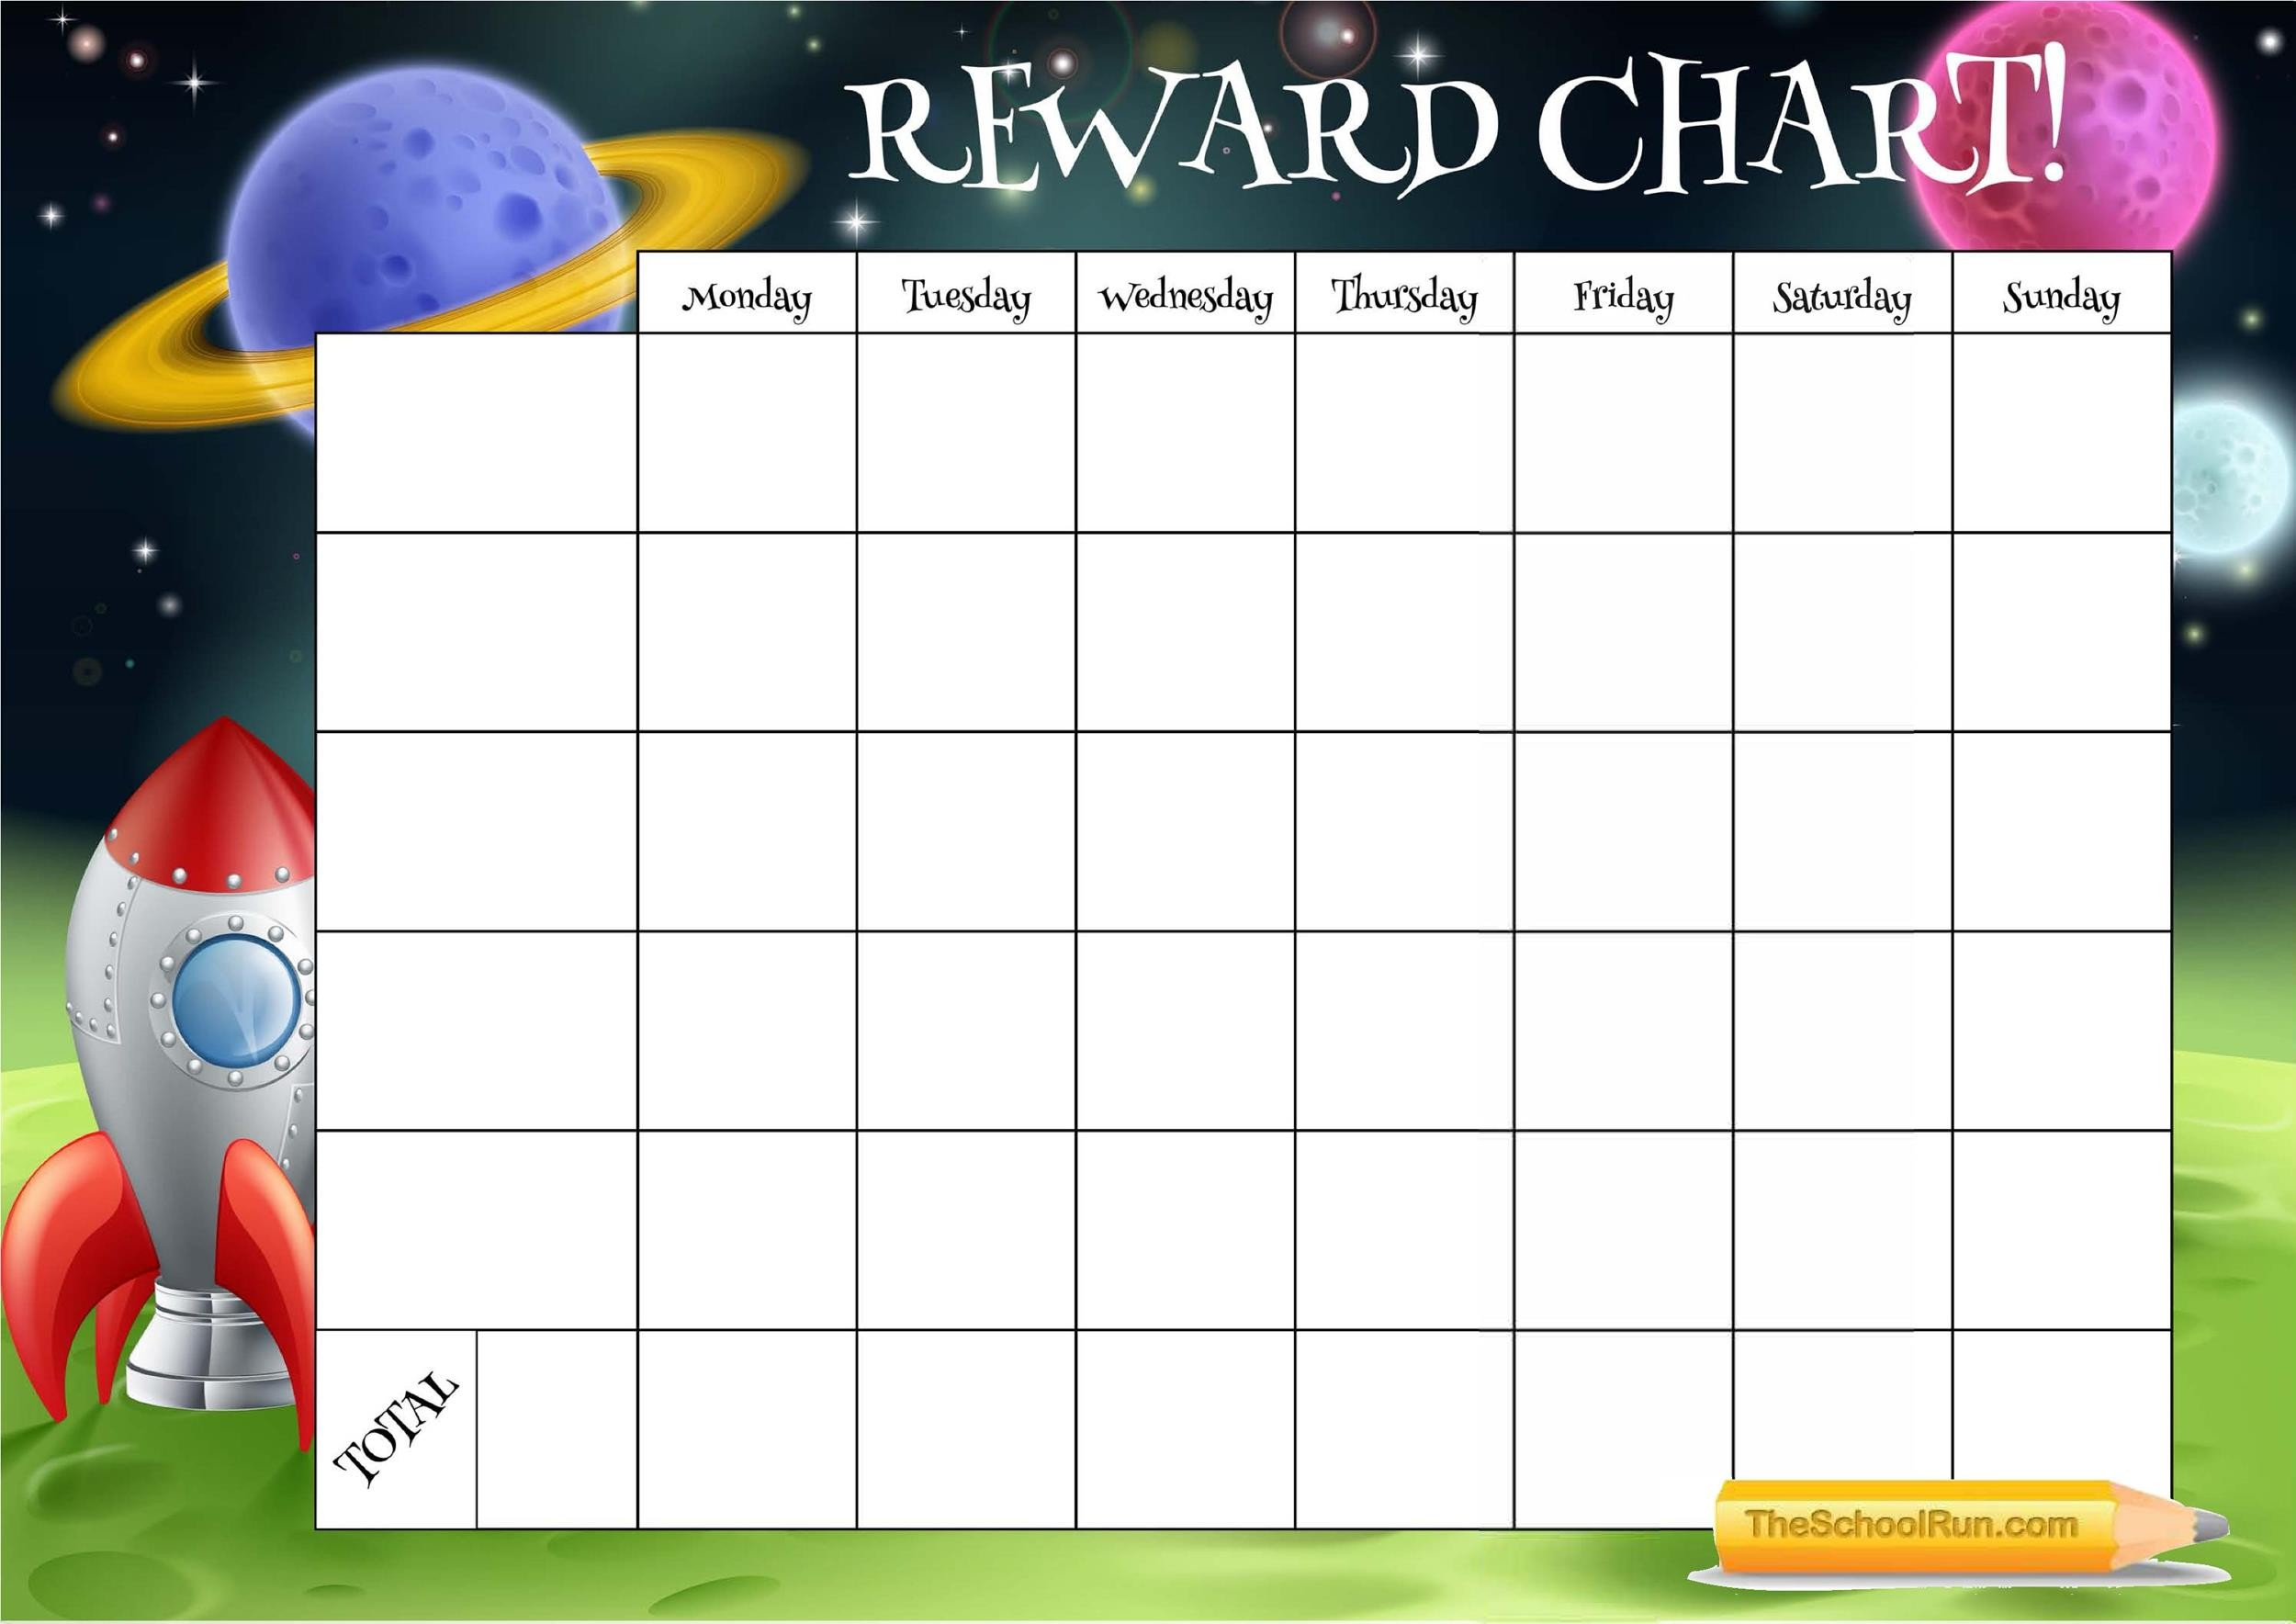 This is a graphic of Witty Rewards Chart Template